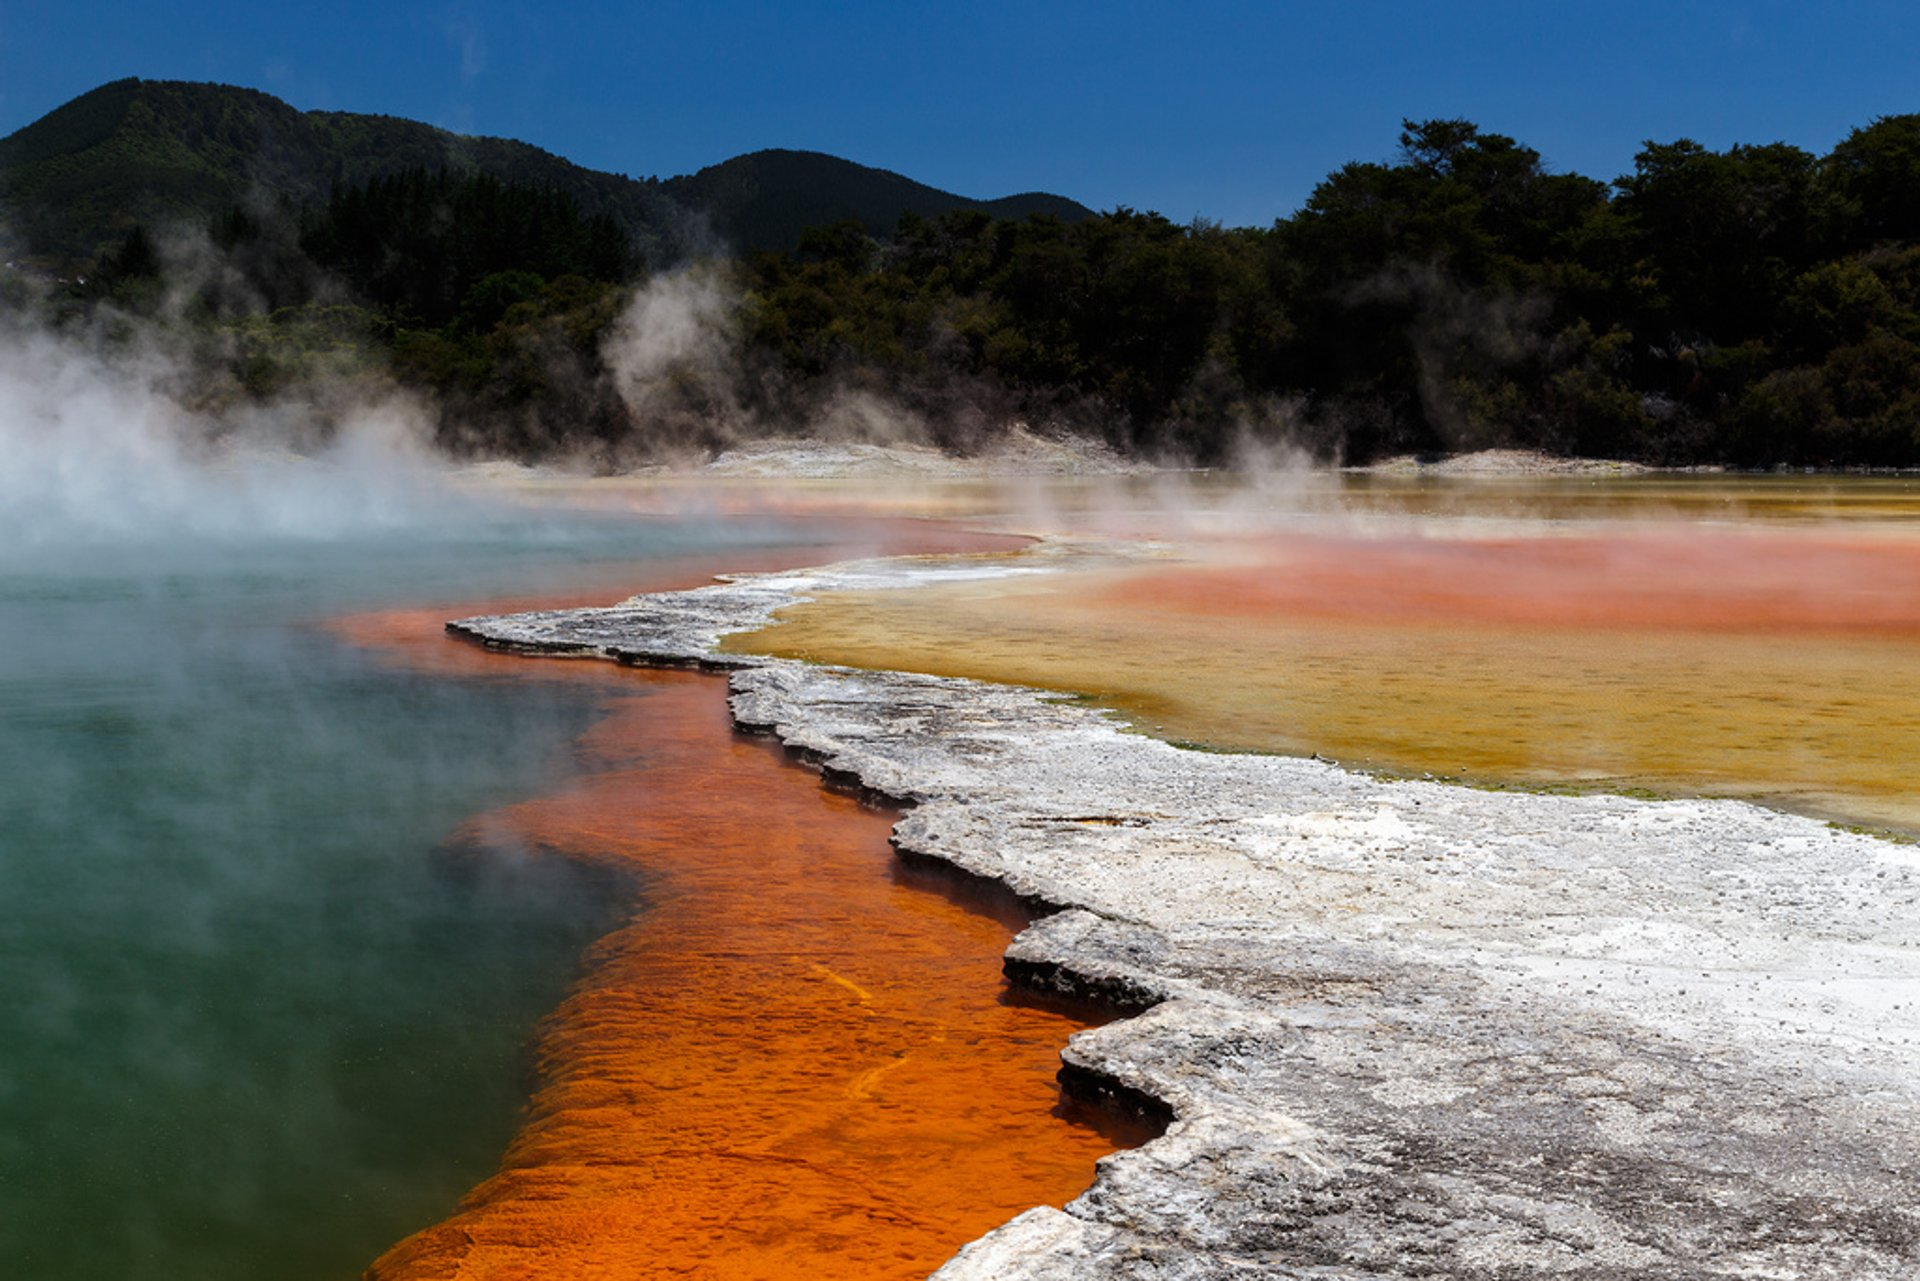 Wai-O-Tapu Thermal Wonderland in New Zealand 2019 - Best Time